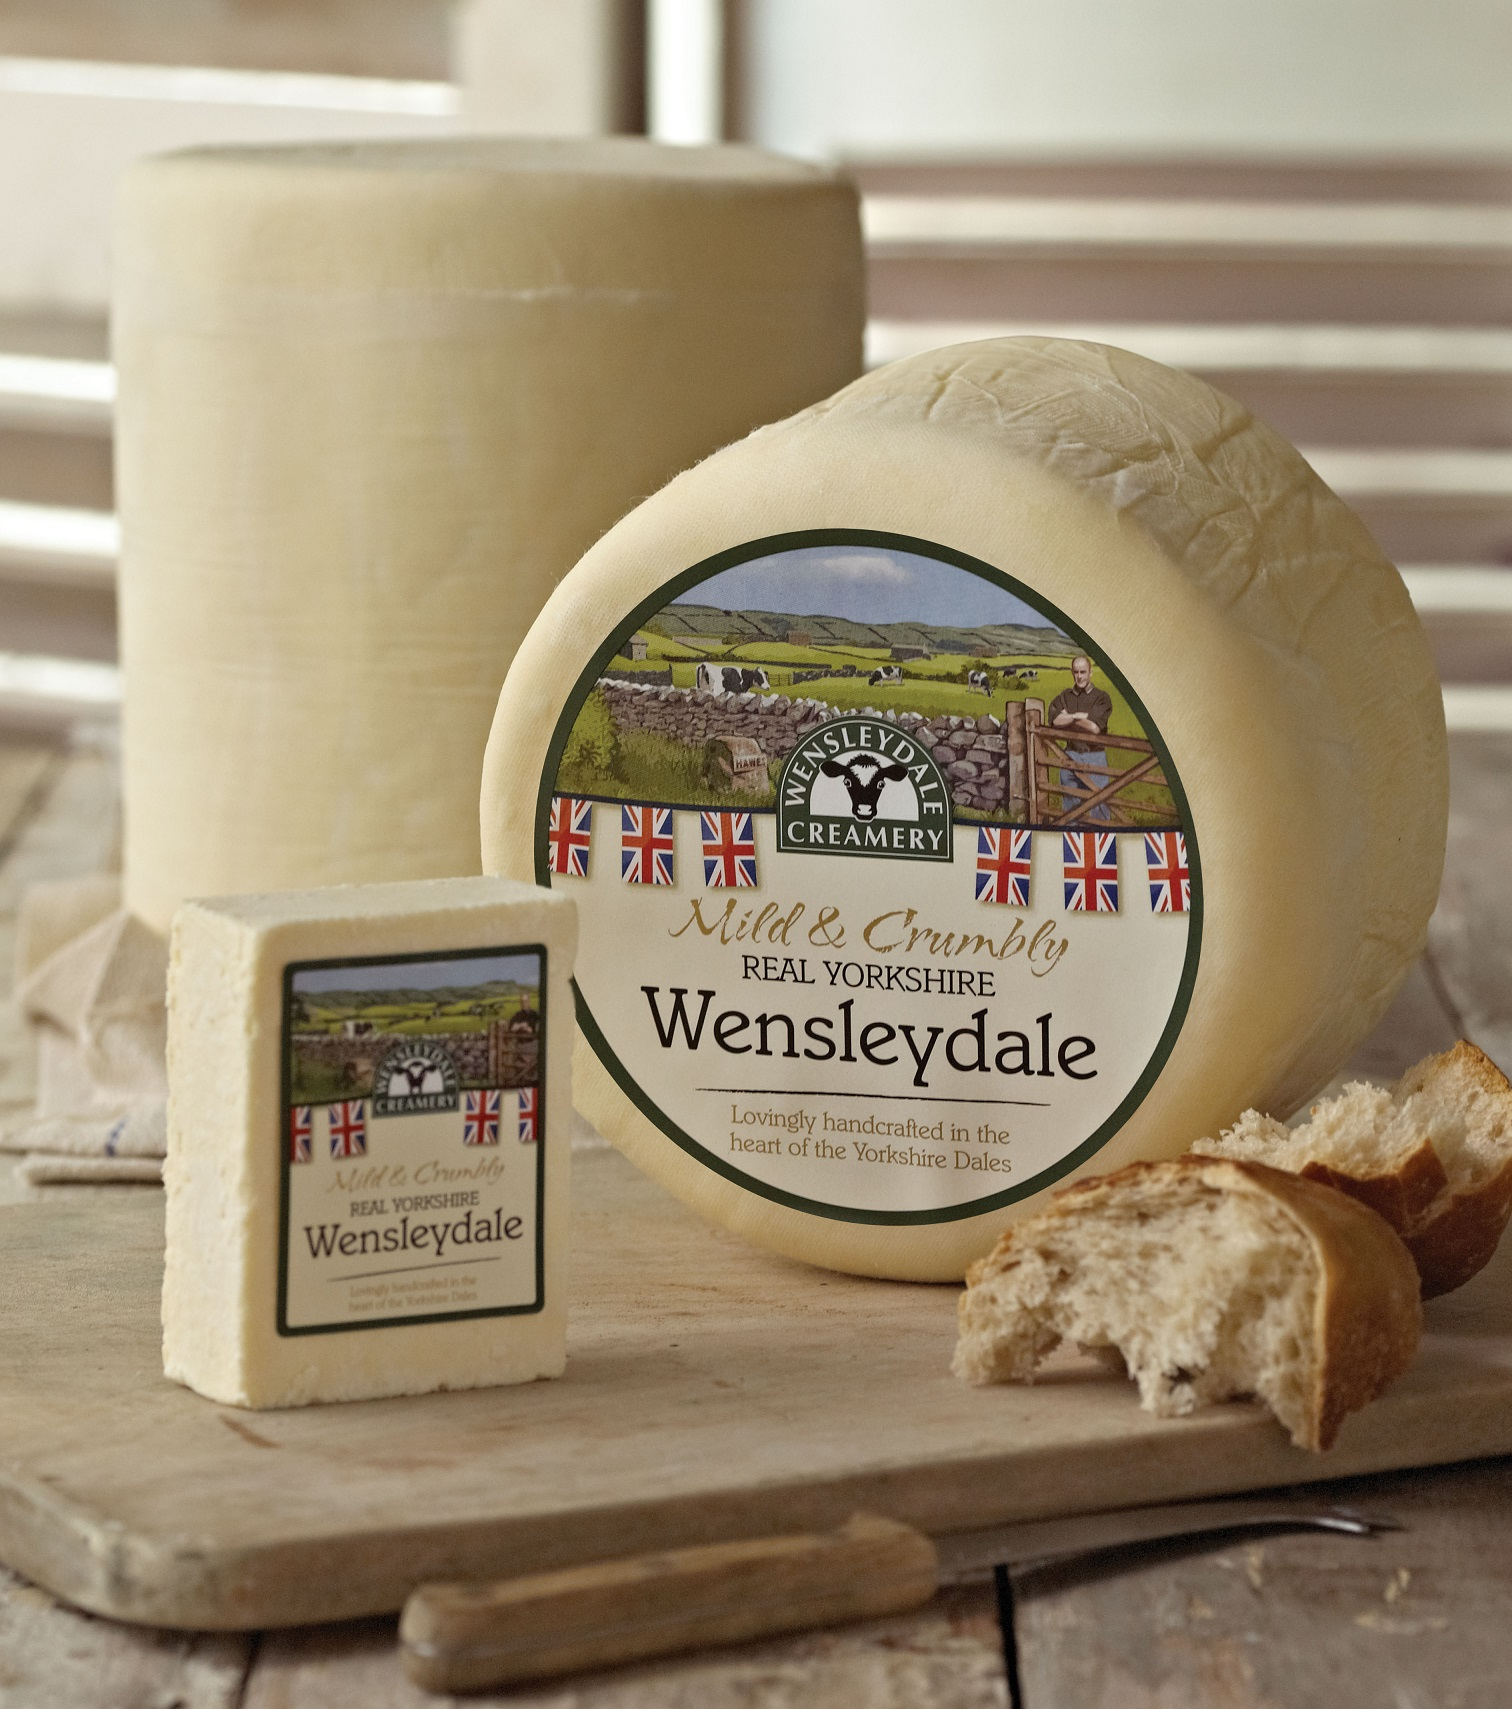 Happy Yorkshire Wensleydale Christmas!